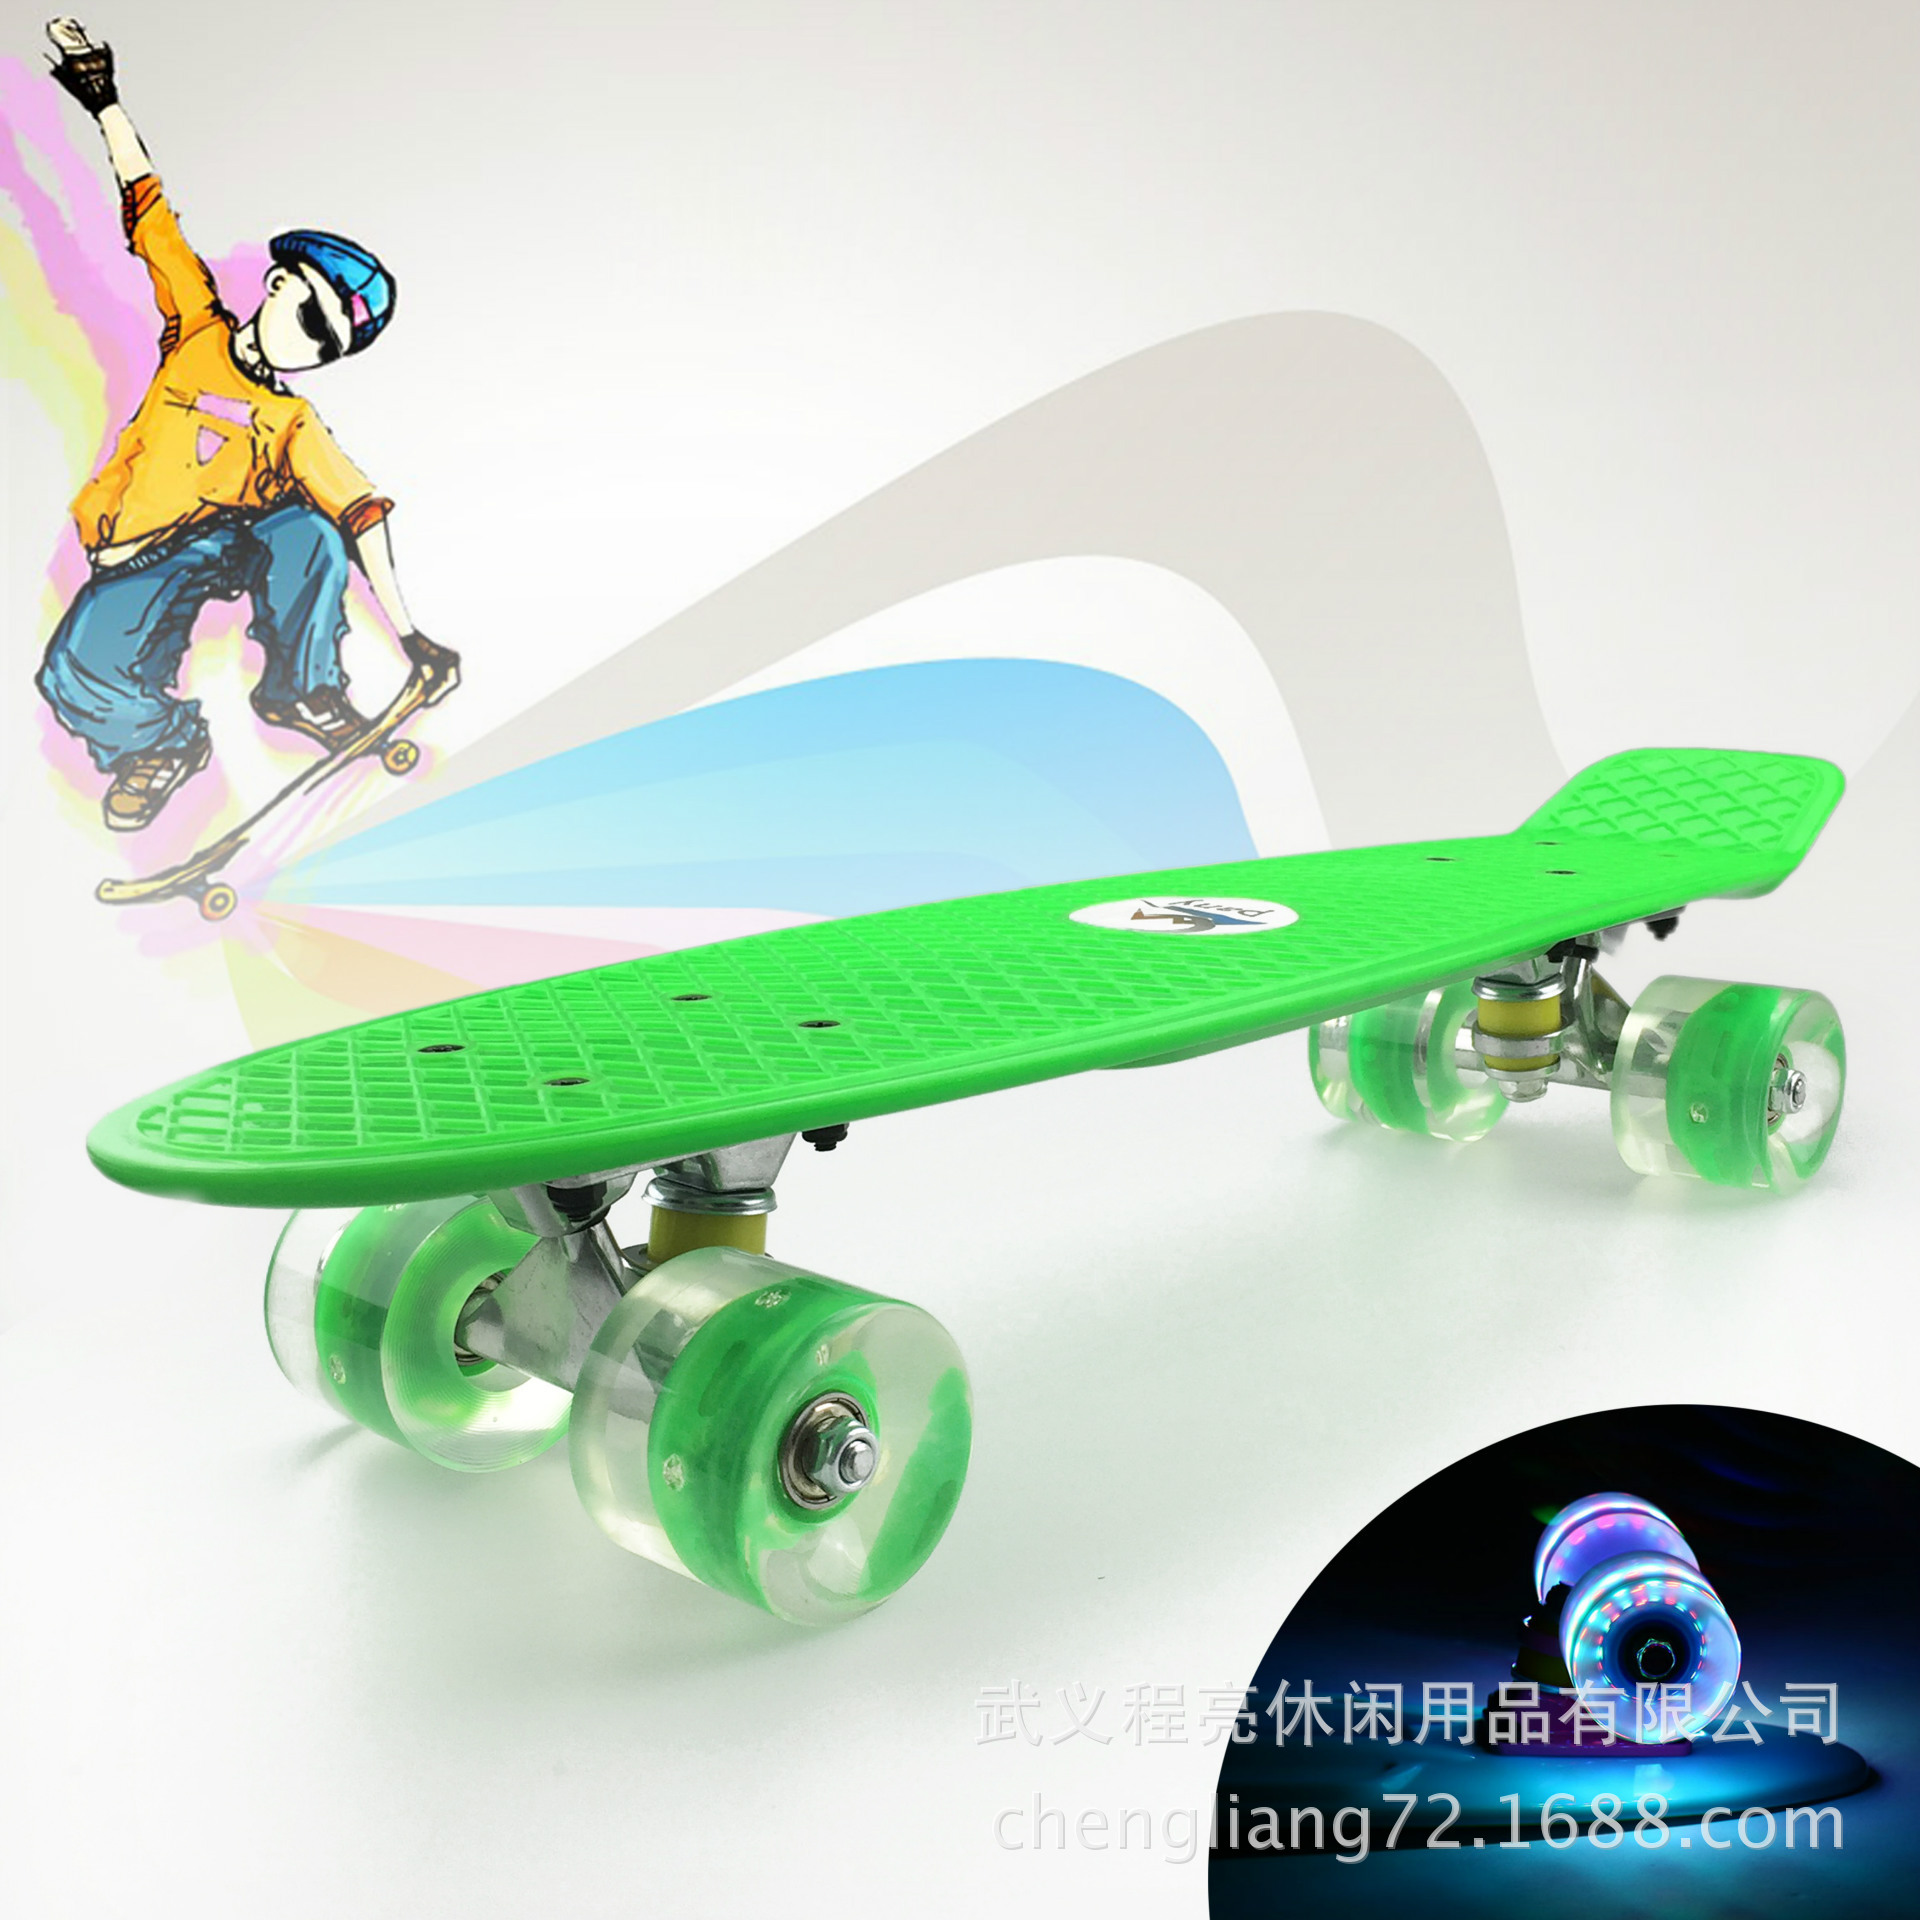 Beginners Children's Four Wheel Fish Skateboard Skateboard LED Flashing Wheel Single Rocker Brush Street Board